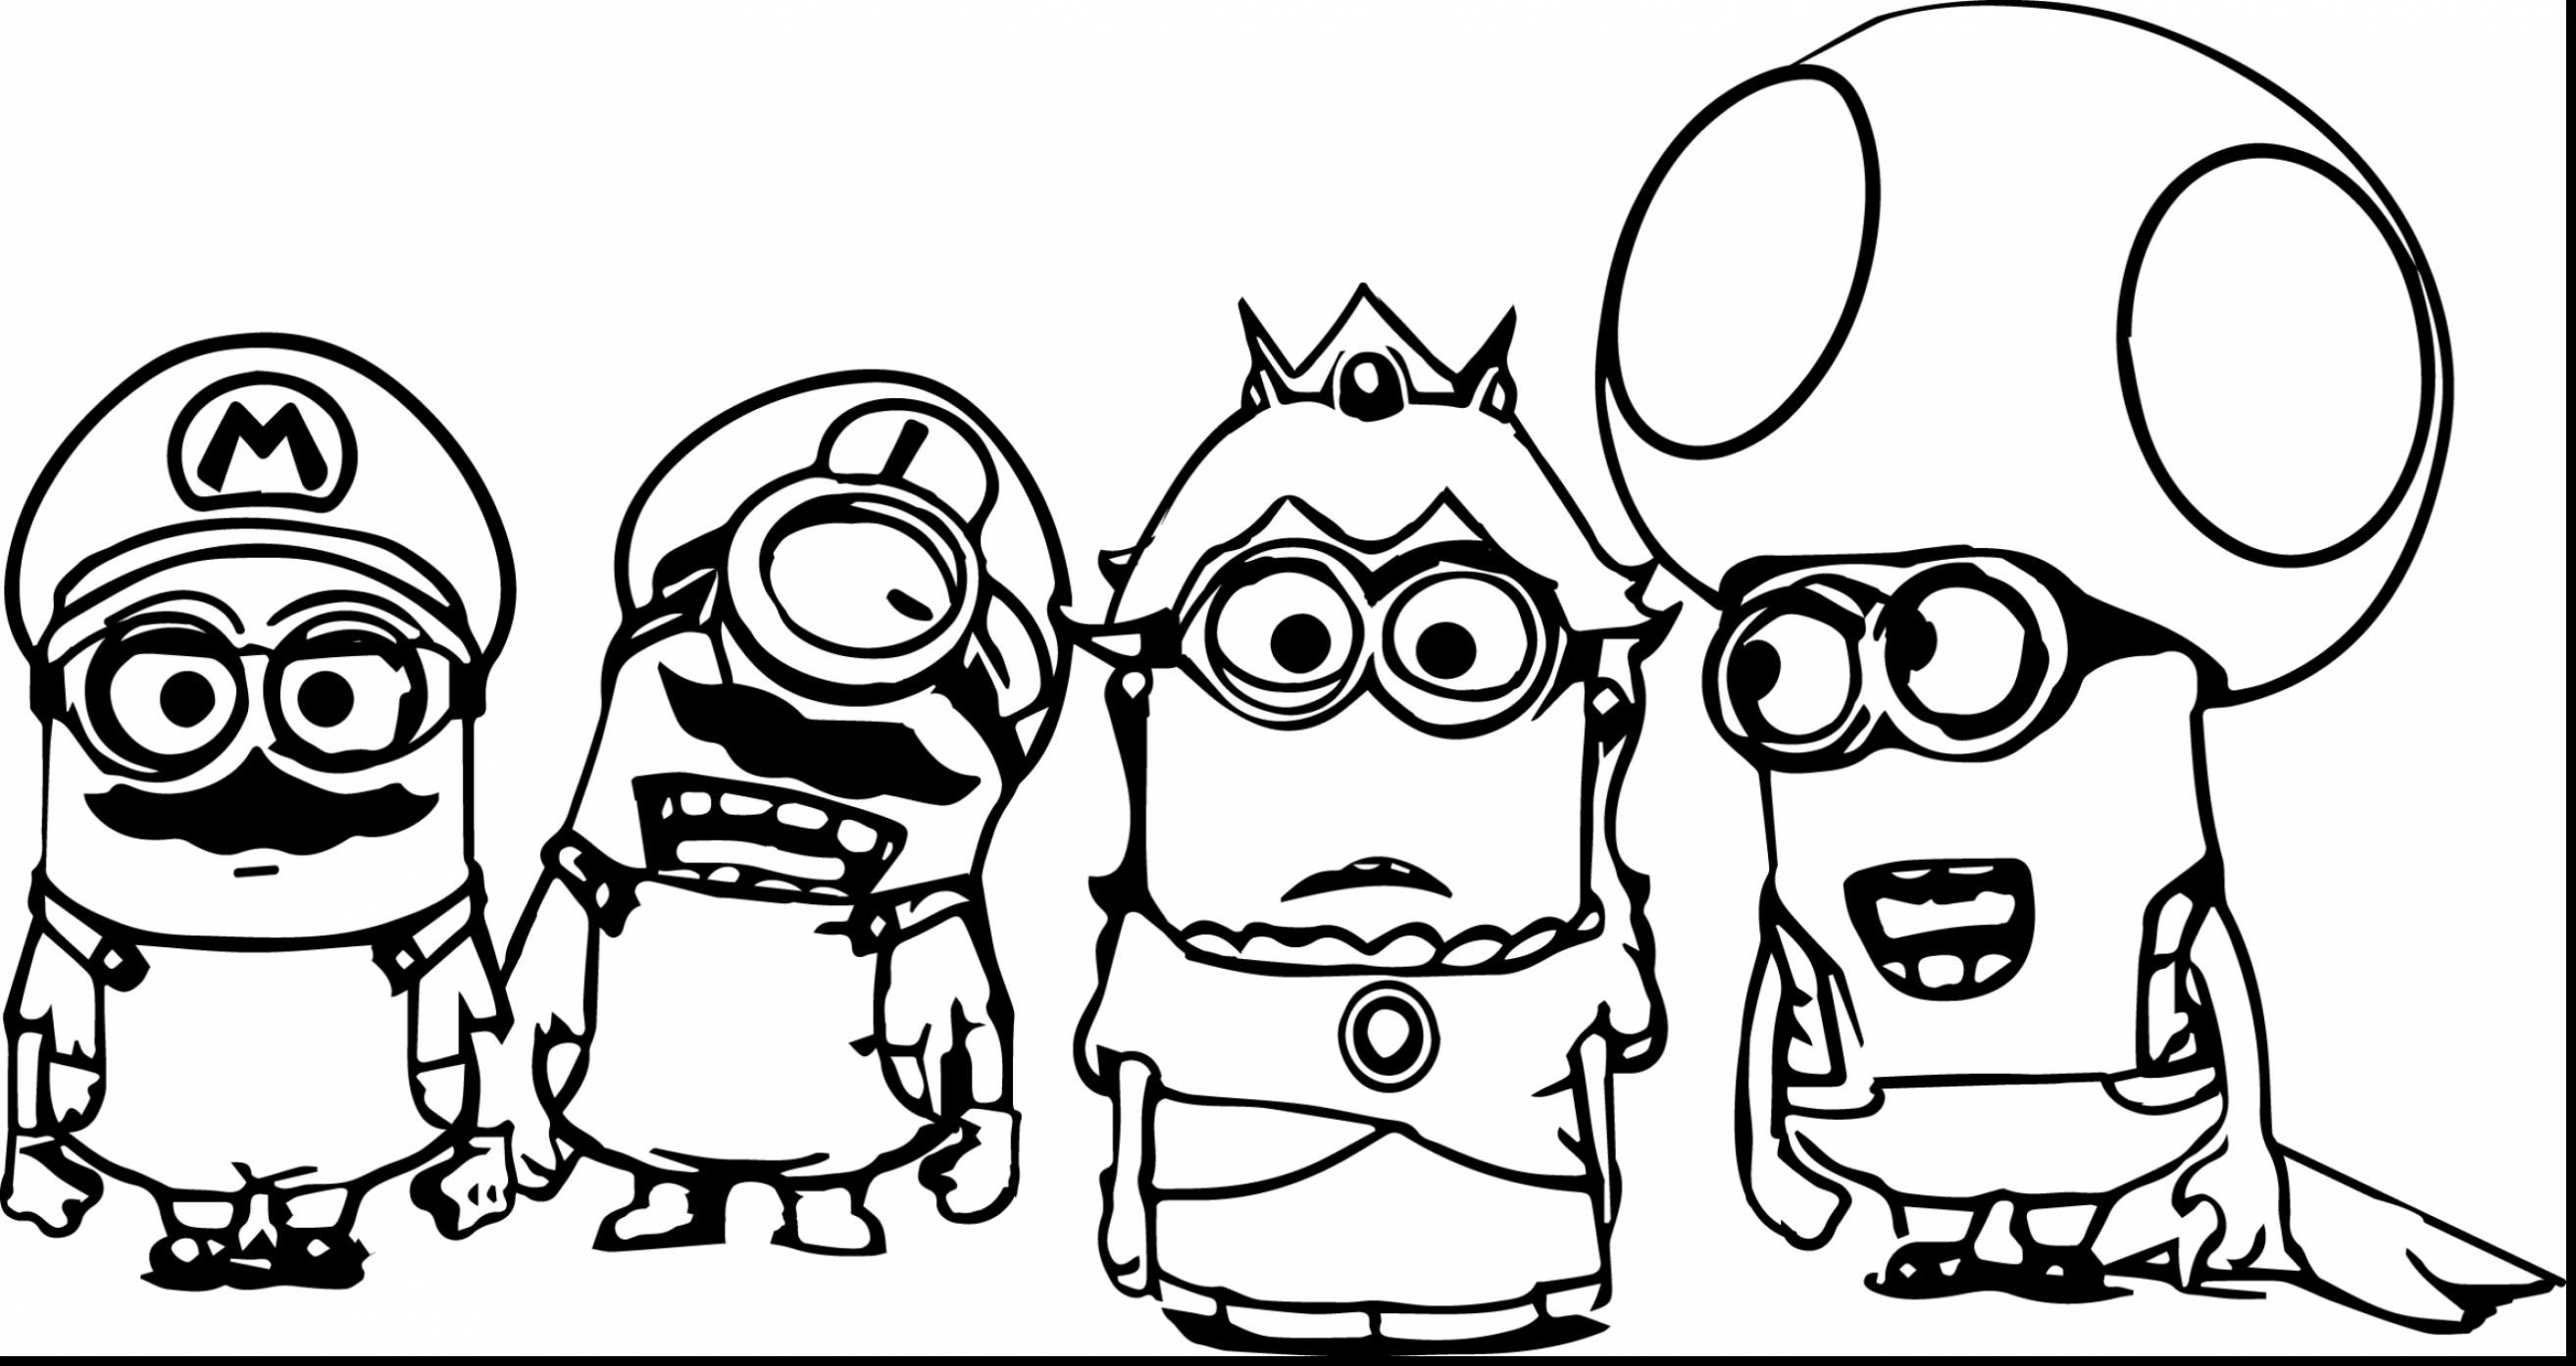 Minions Coloring Pages Minion Coloring Pages To Print 10 E Halloween 7 Futurama